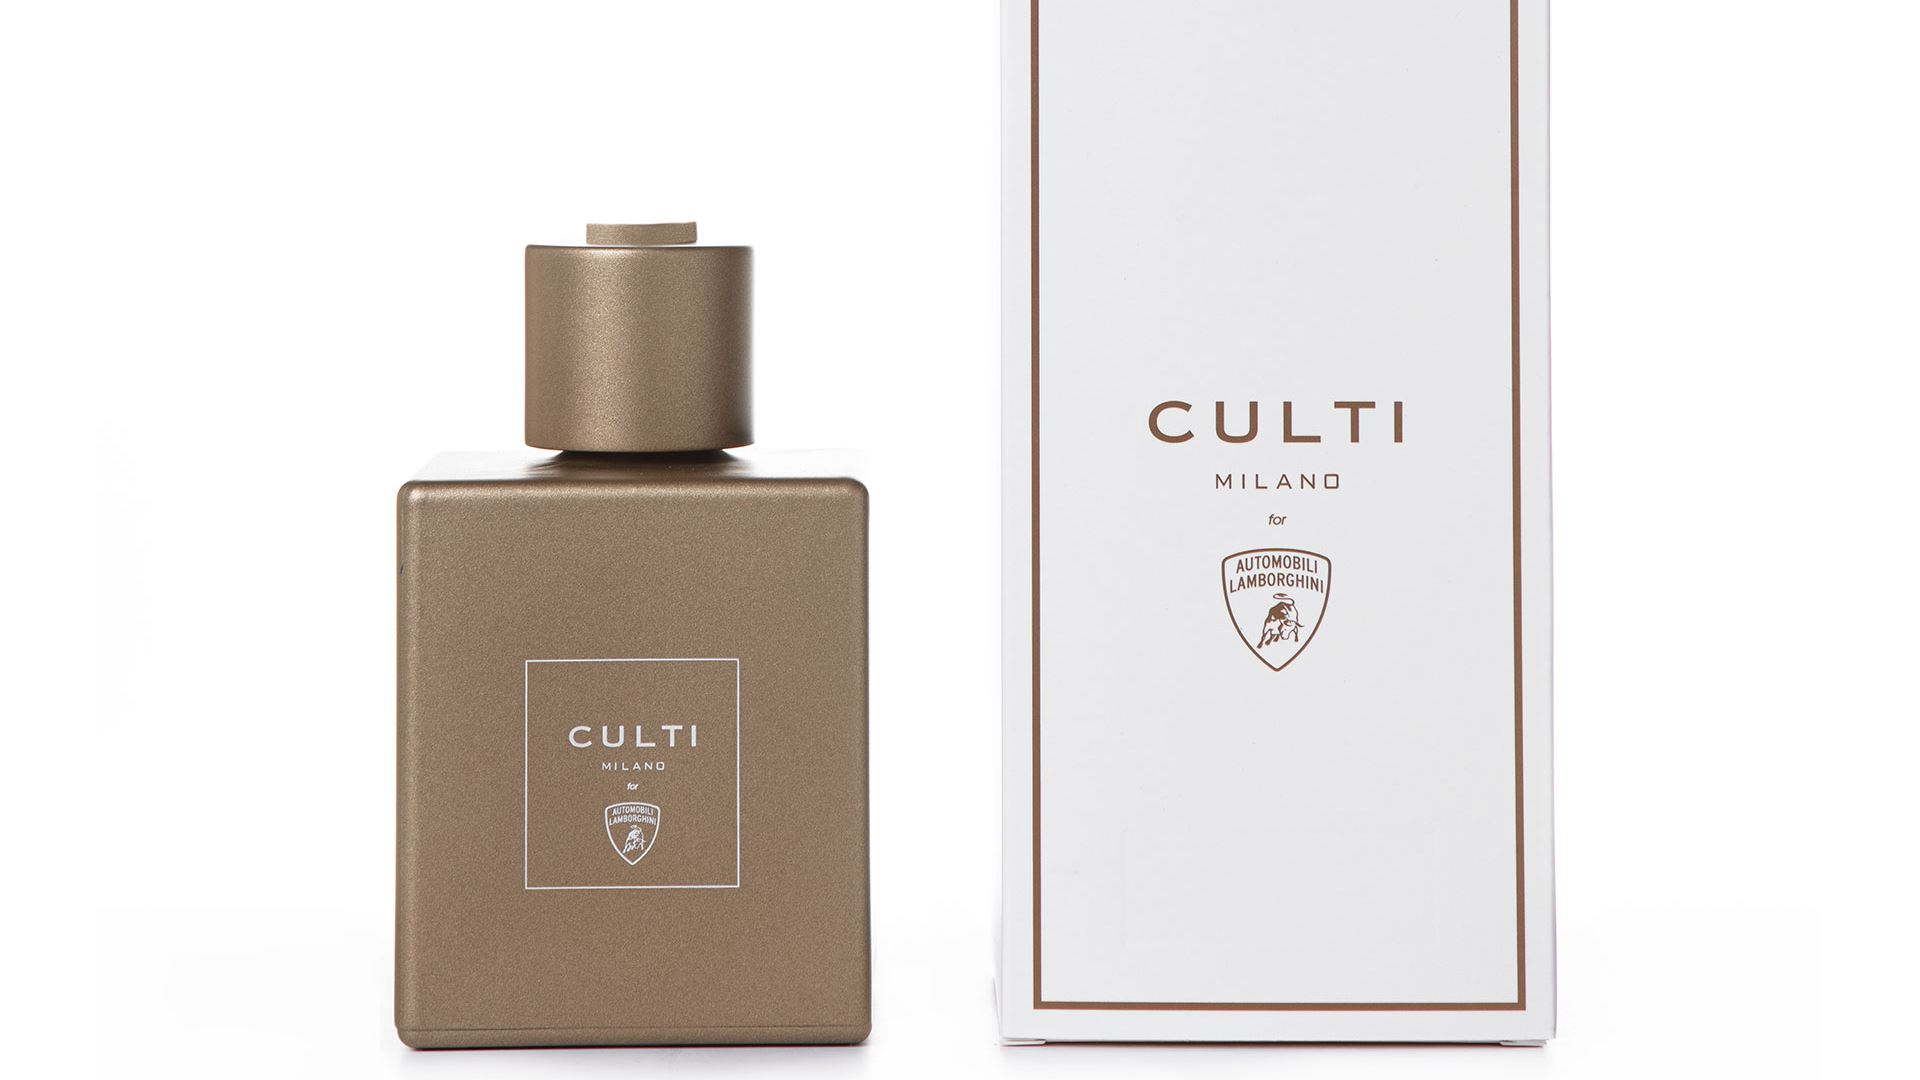 The first olfactory Automobili Lamborghini branding project signed by Culti Milano - Image 1